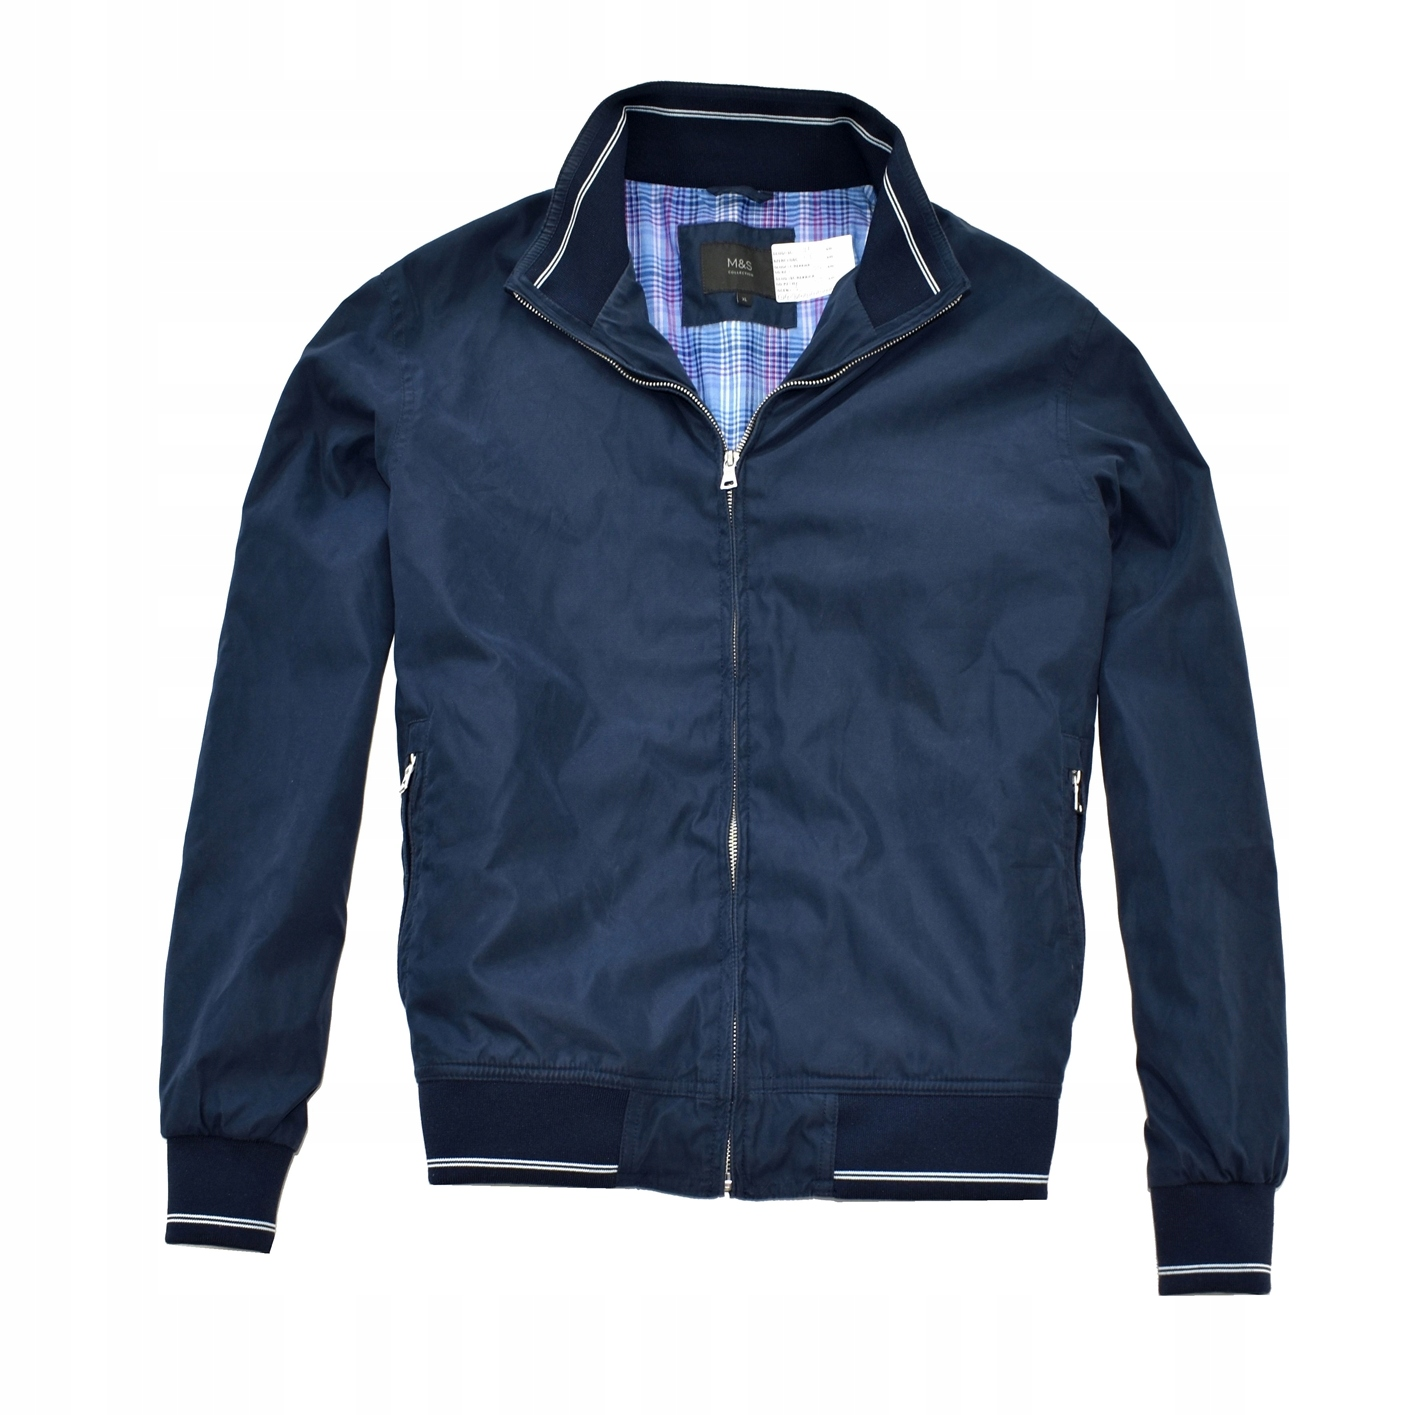 MM 347 M&S_ORYGINAL NAVY CASUAL JACKET_XL